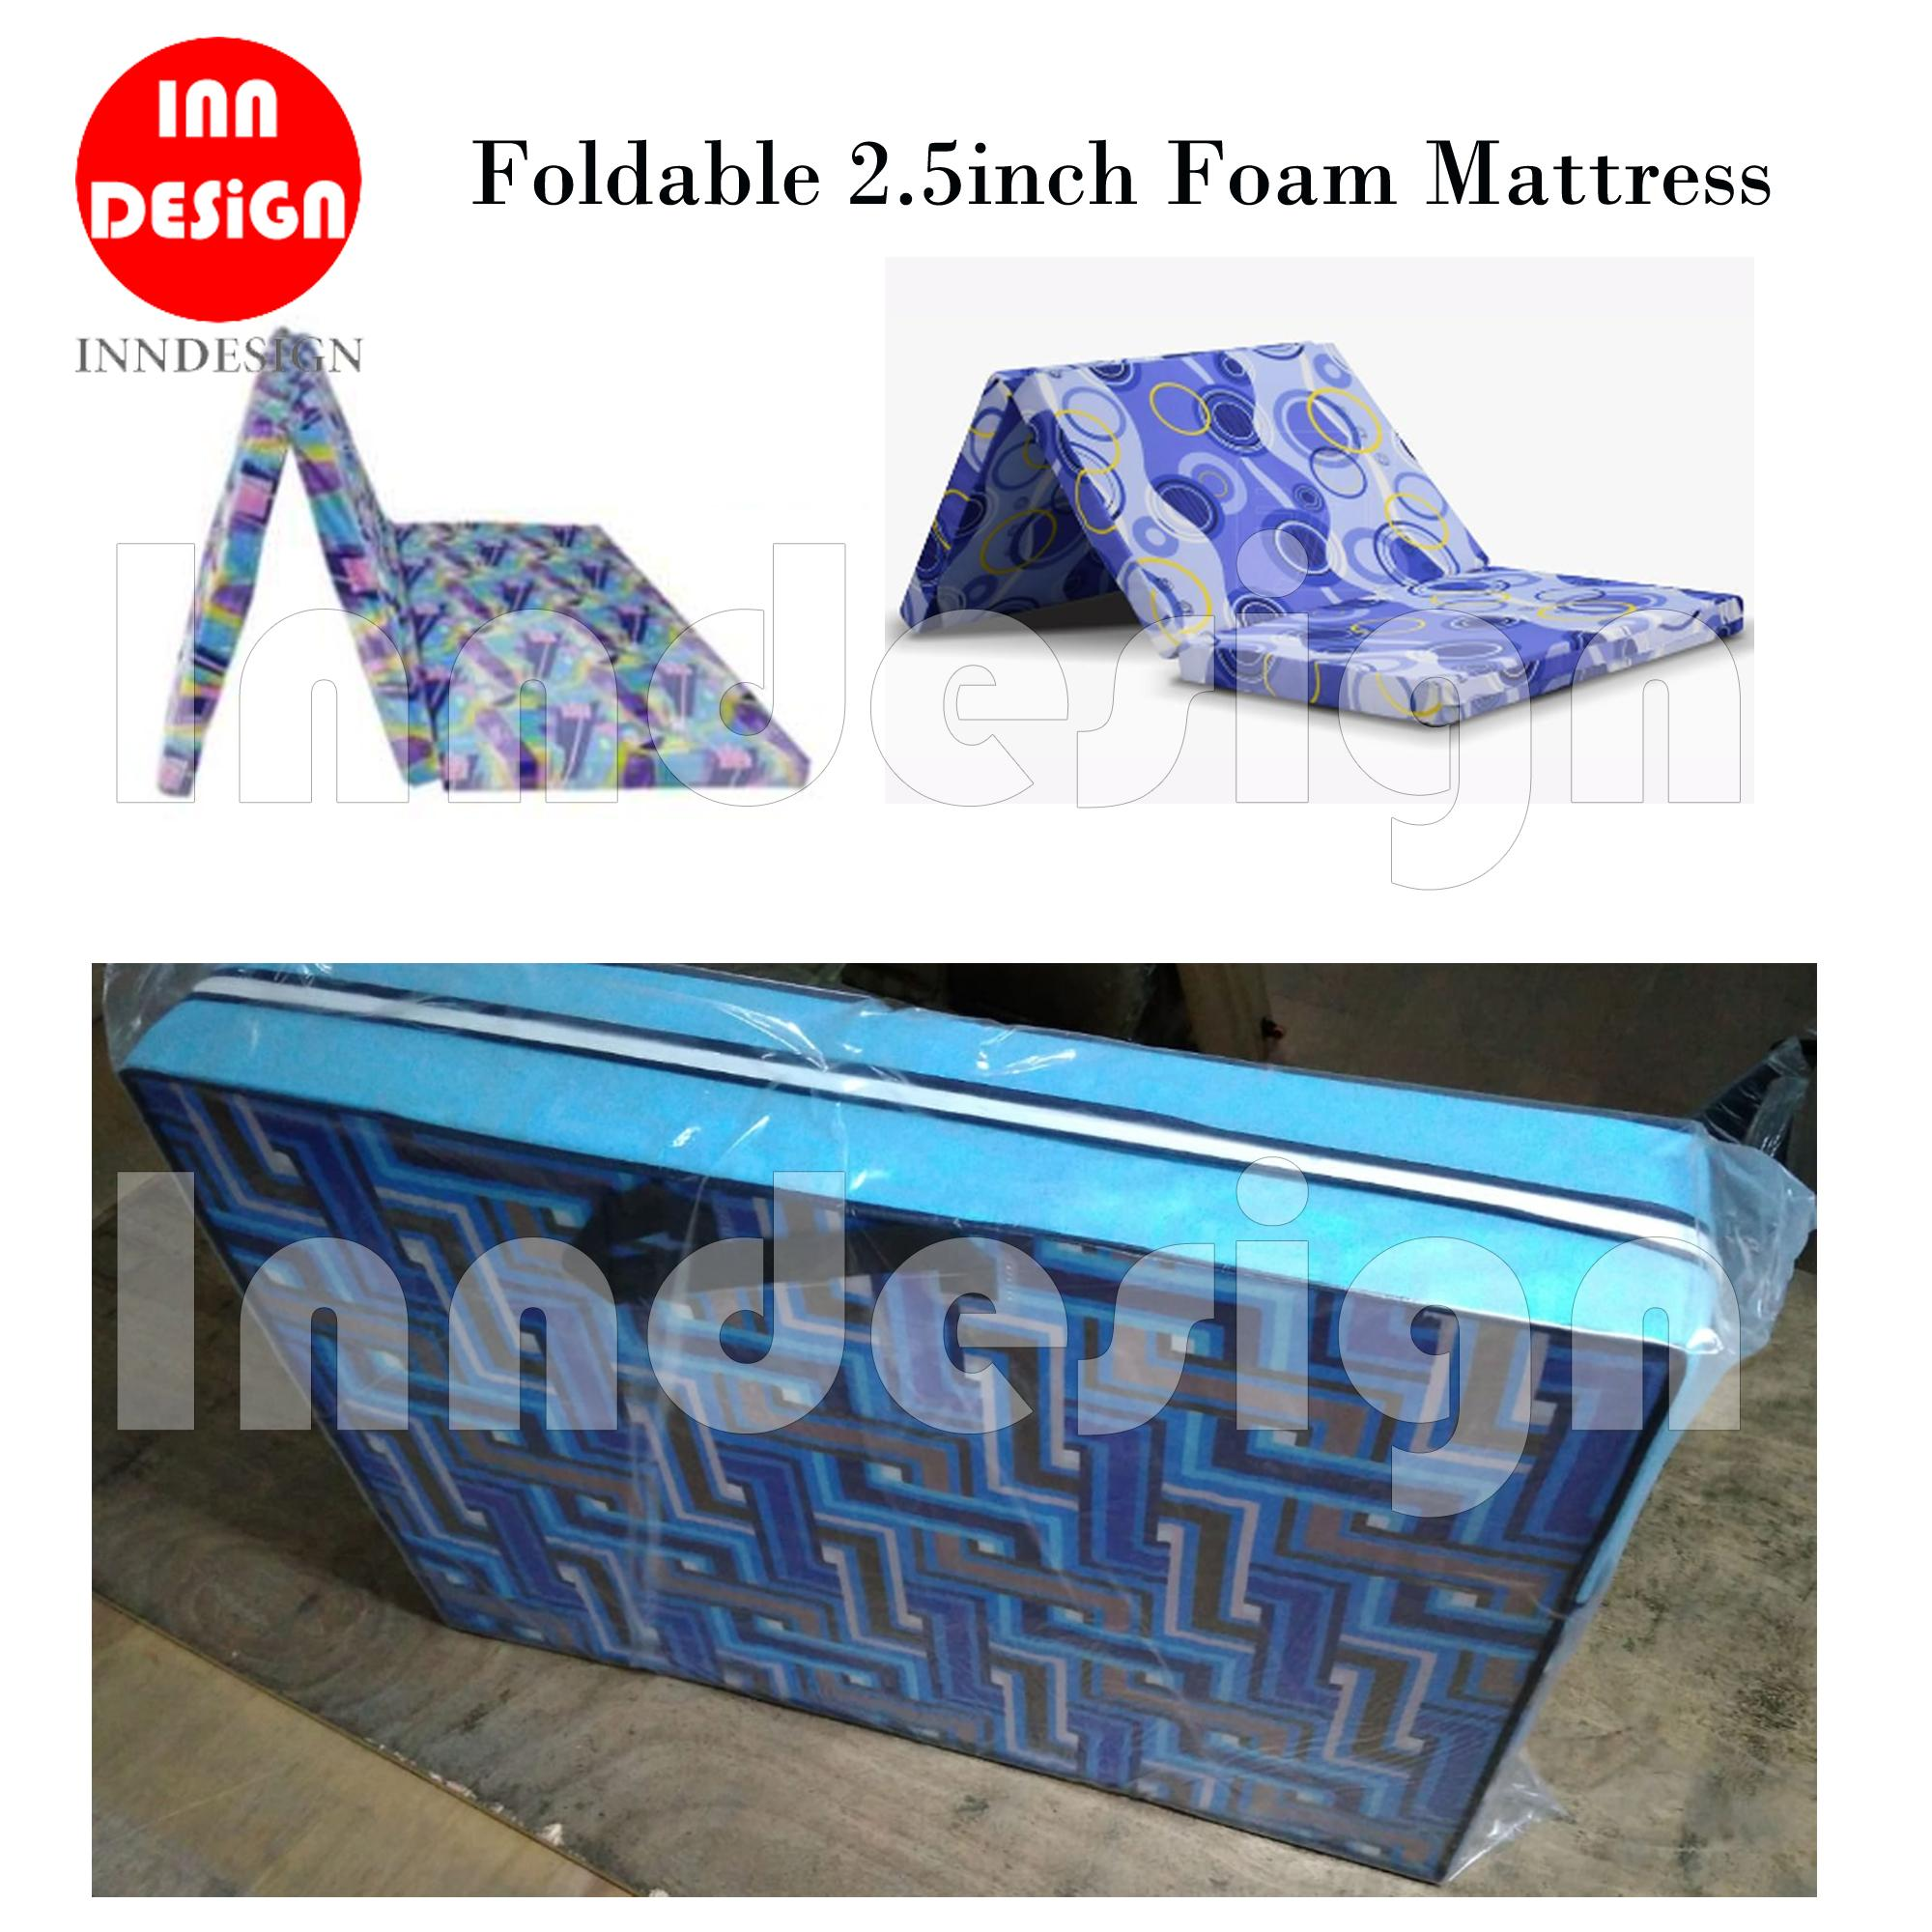 Foldable Foam Mattress (2.5inch)